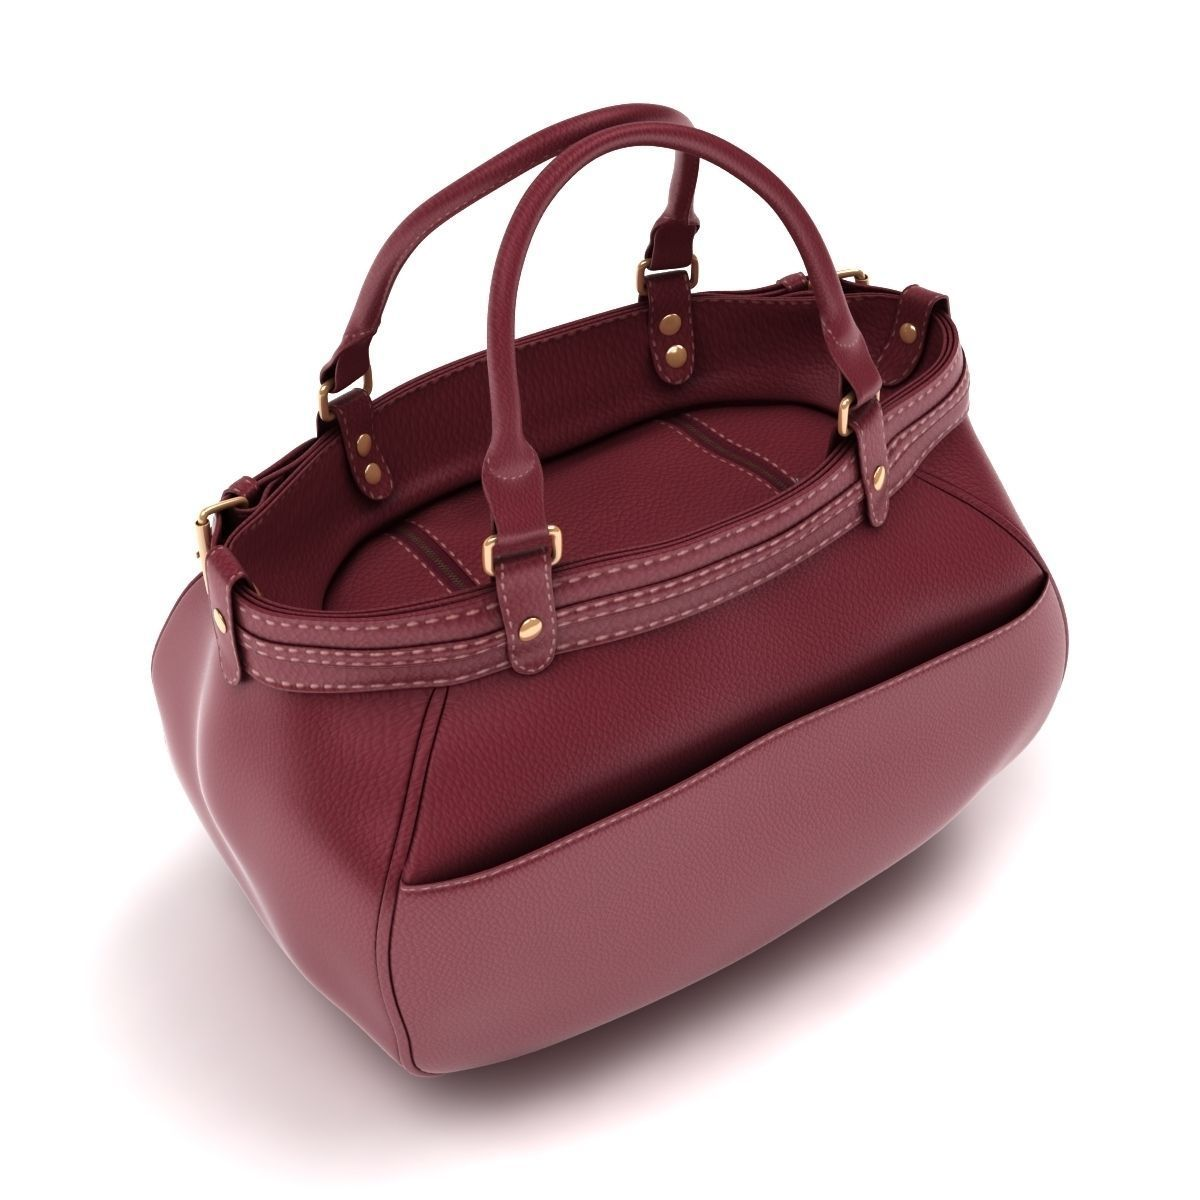 546cb40684 ... ladies hand bag 03 3d model max obj mtl 3ds fbx c4d lwo lw lws 4 ...